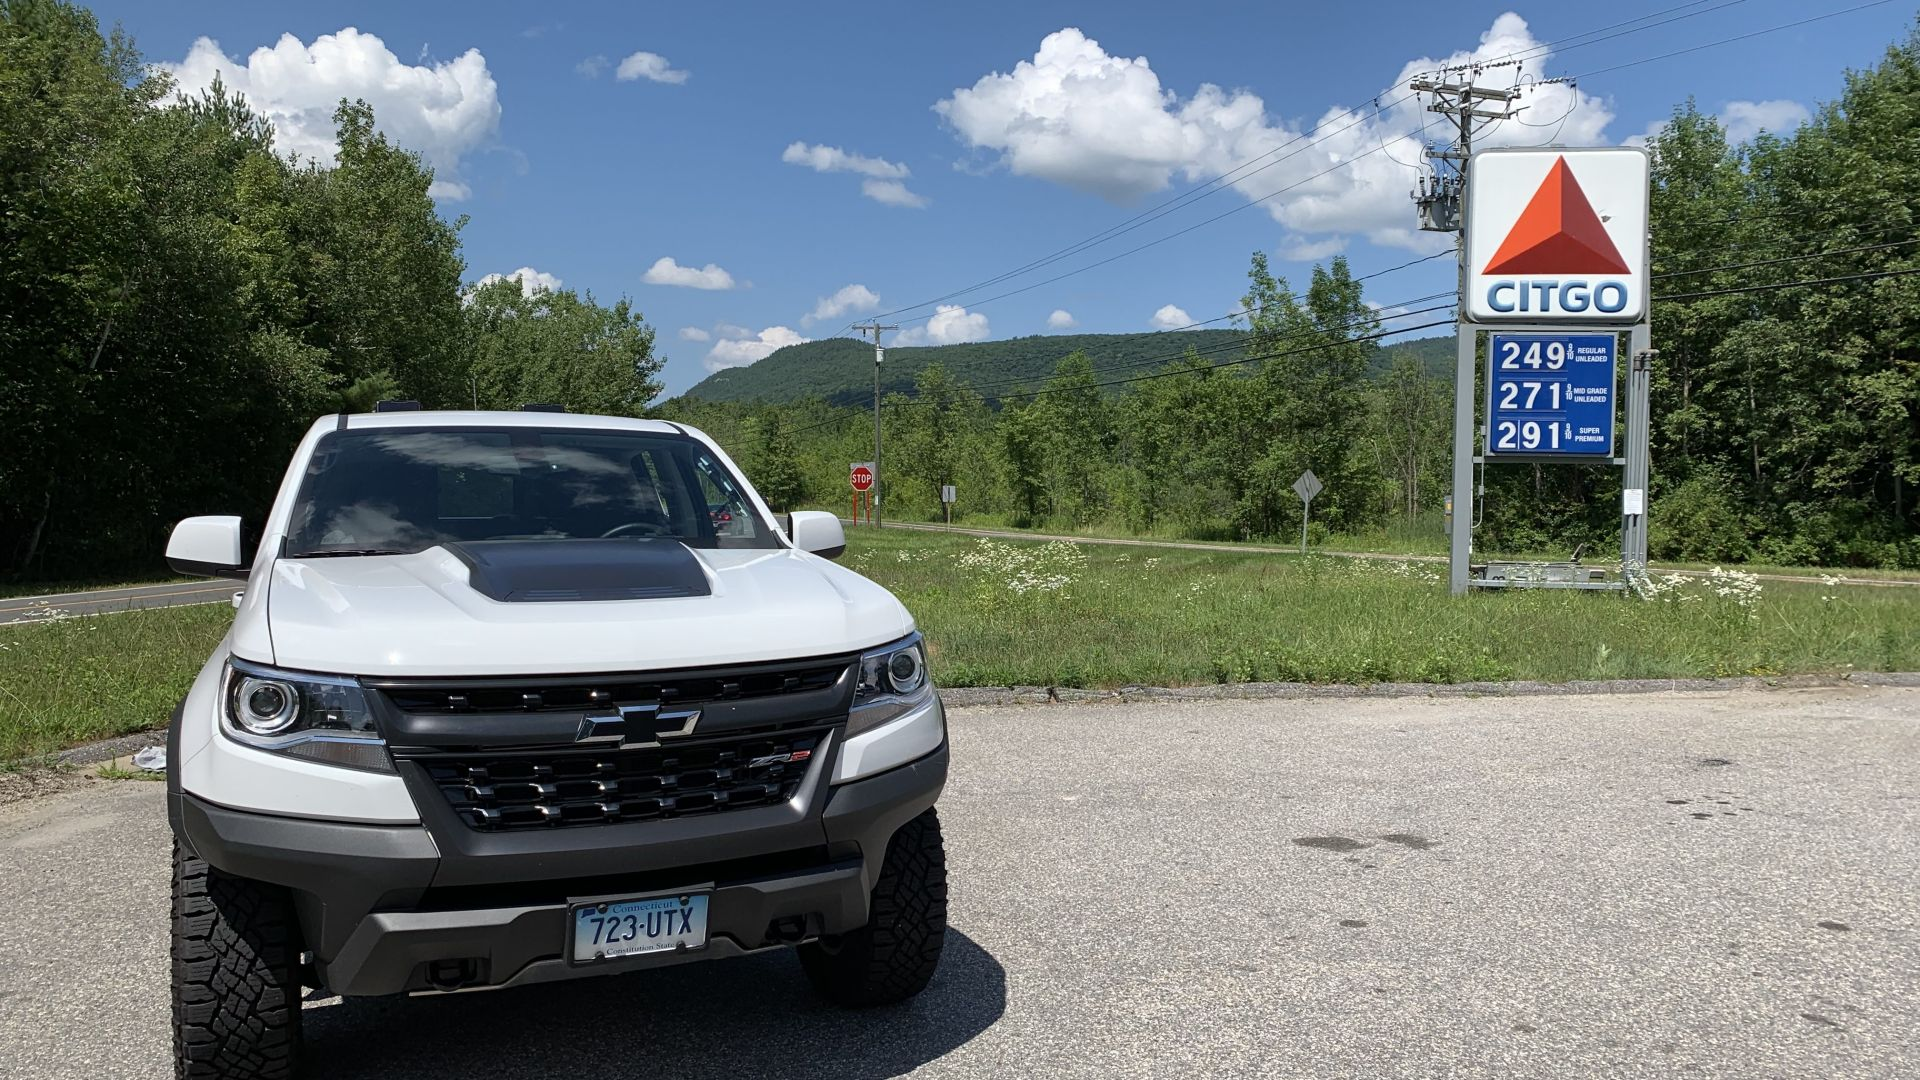 2019, chevy, chevrolet, colorado, ZR2, review, five things, love, hate, ownership, off road